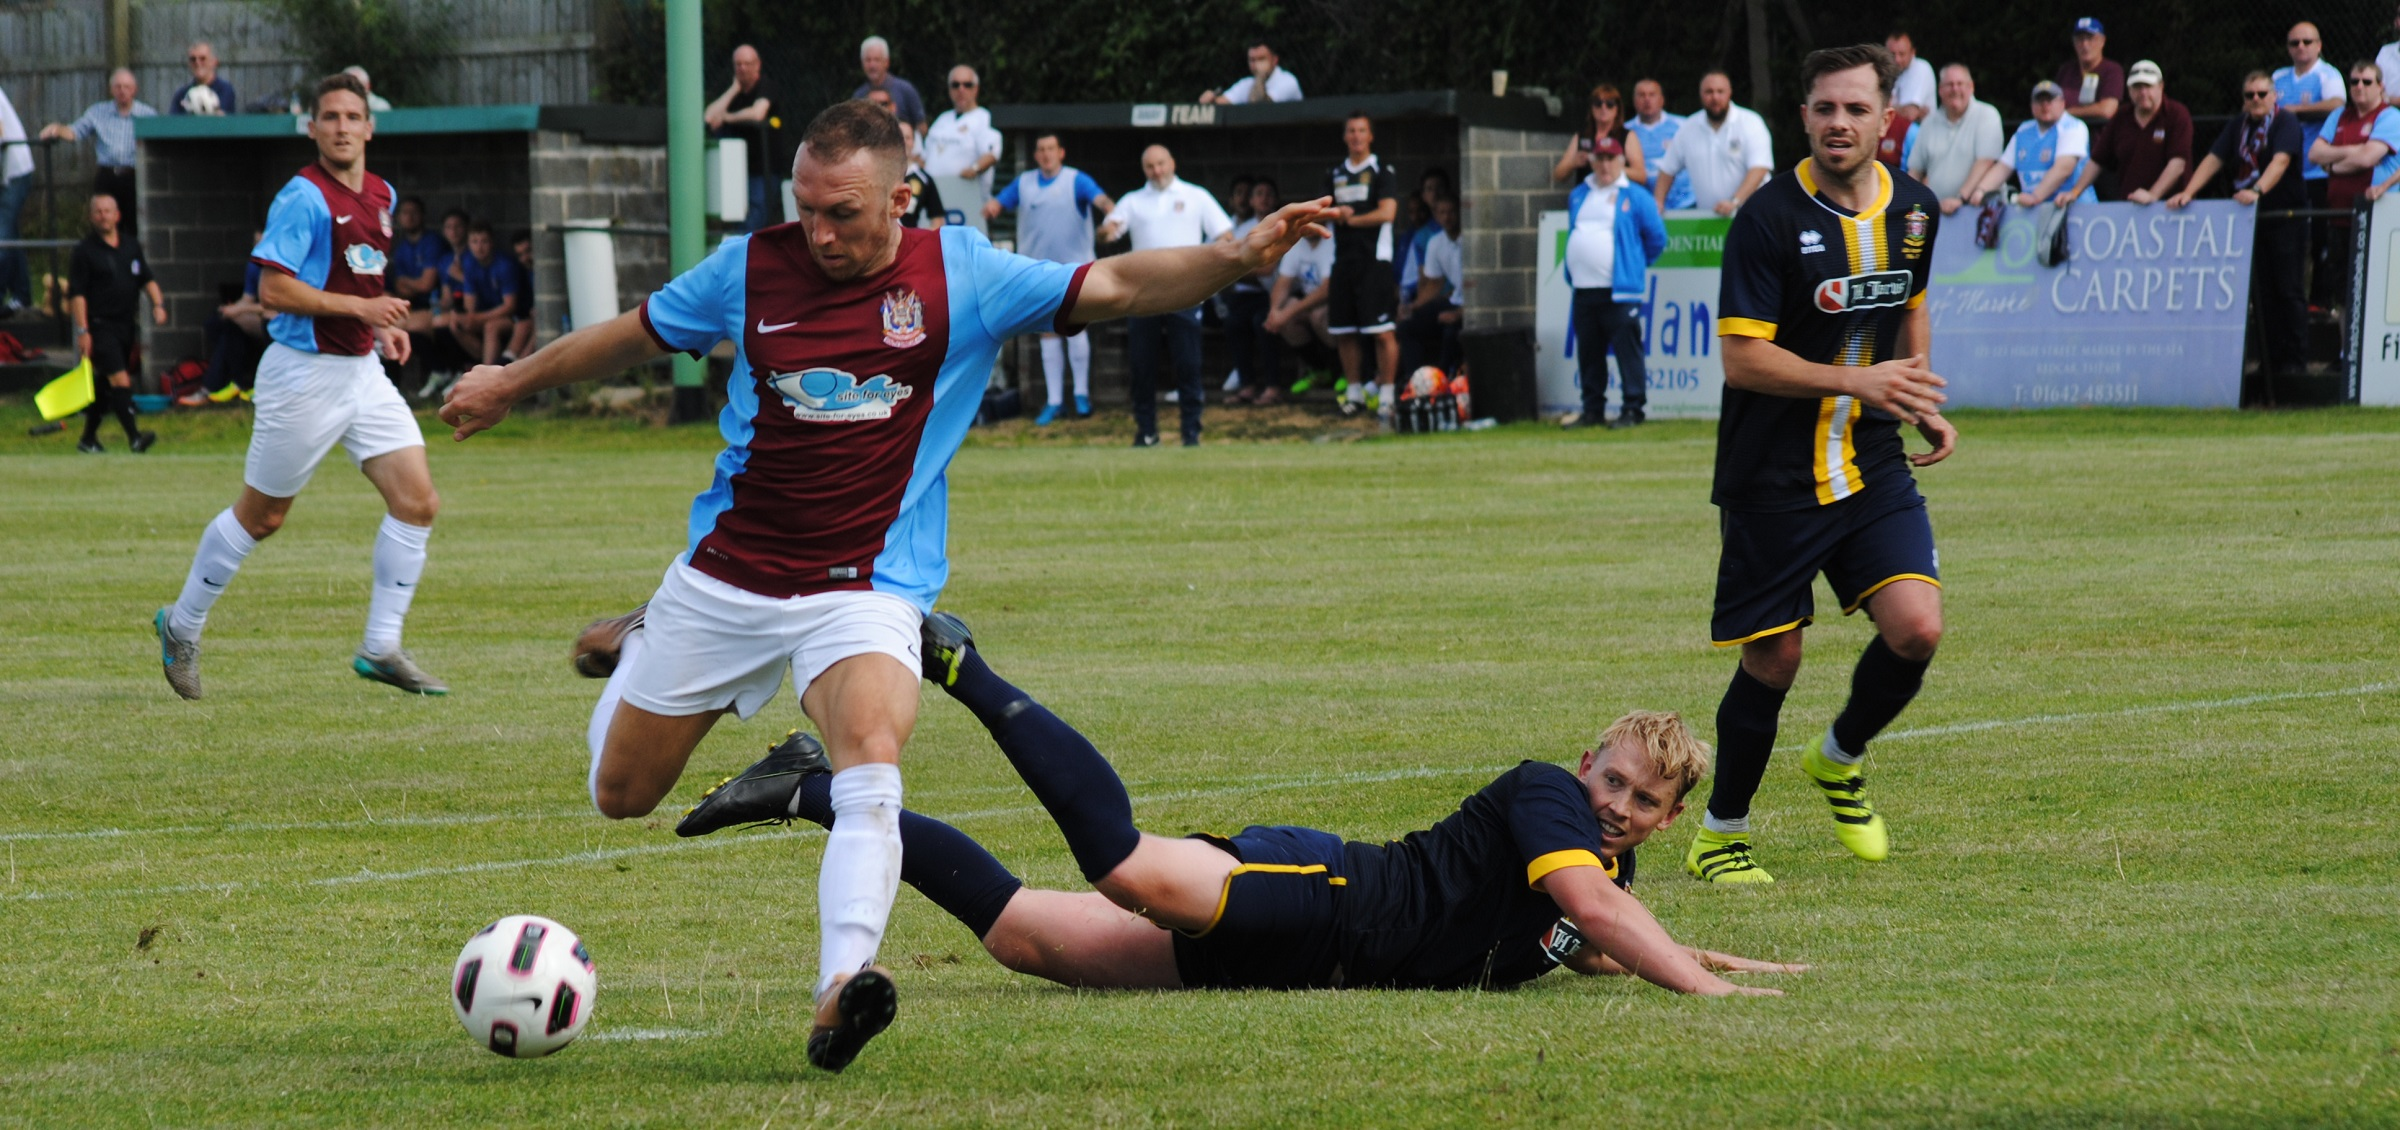 Marske United 3-1 South Shields: Mariners out of FA Cup